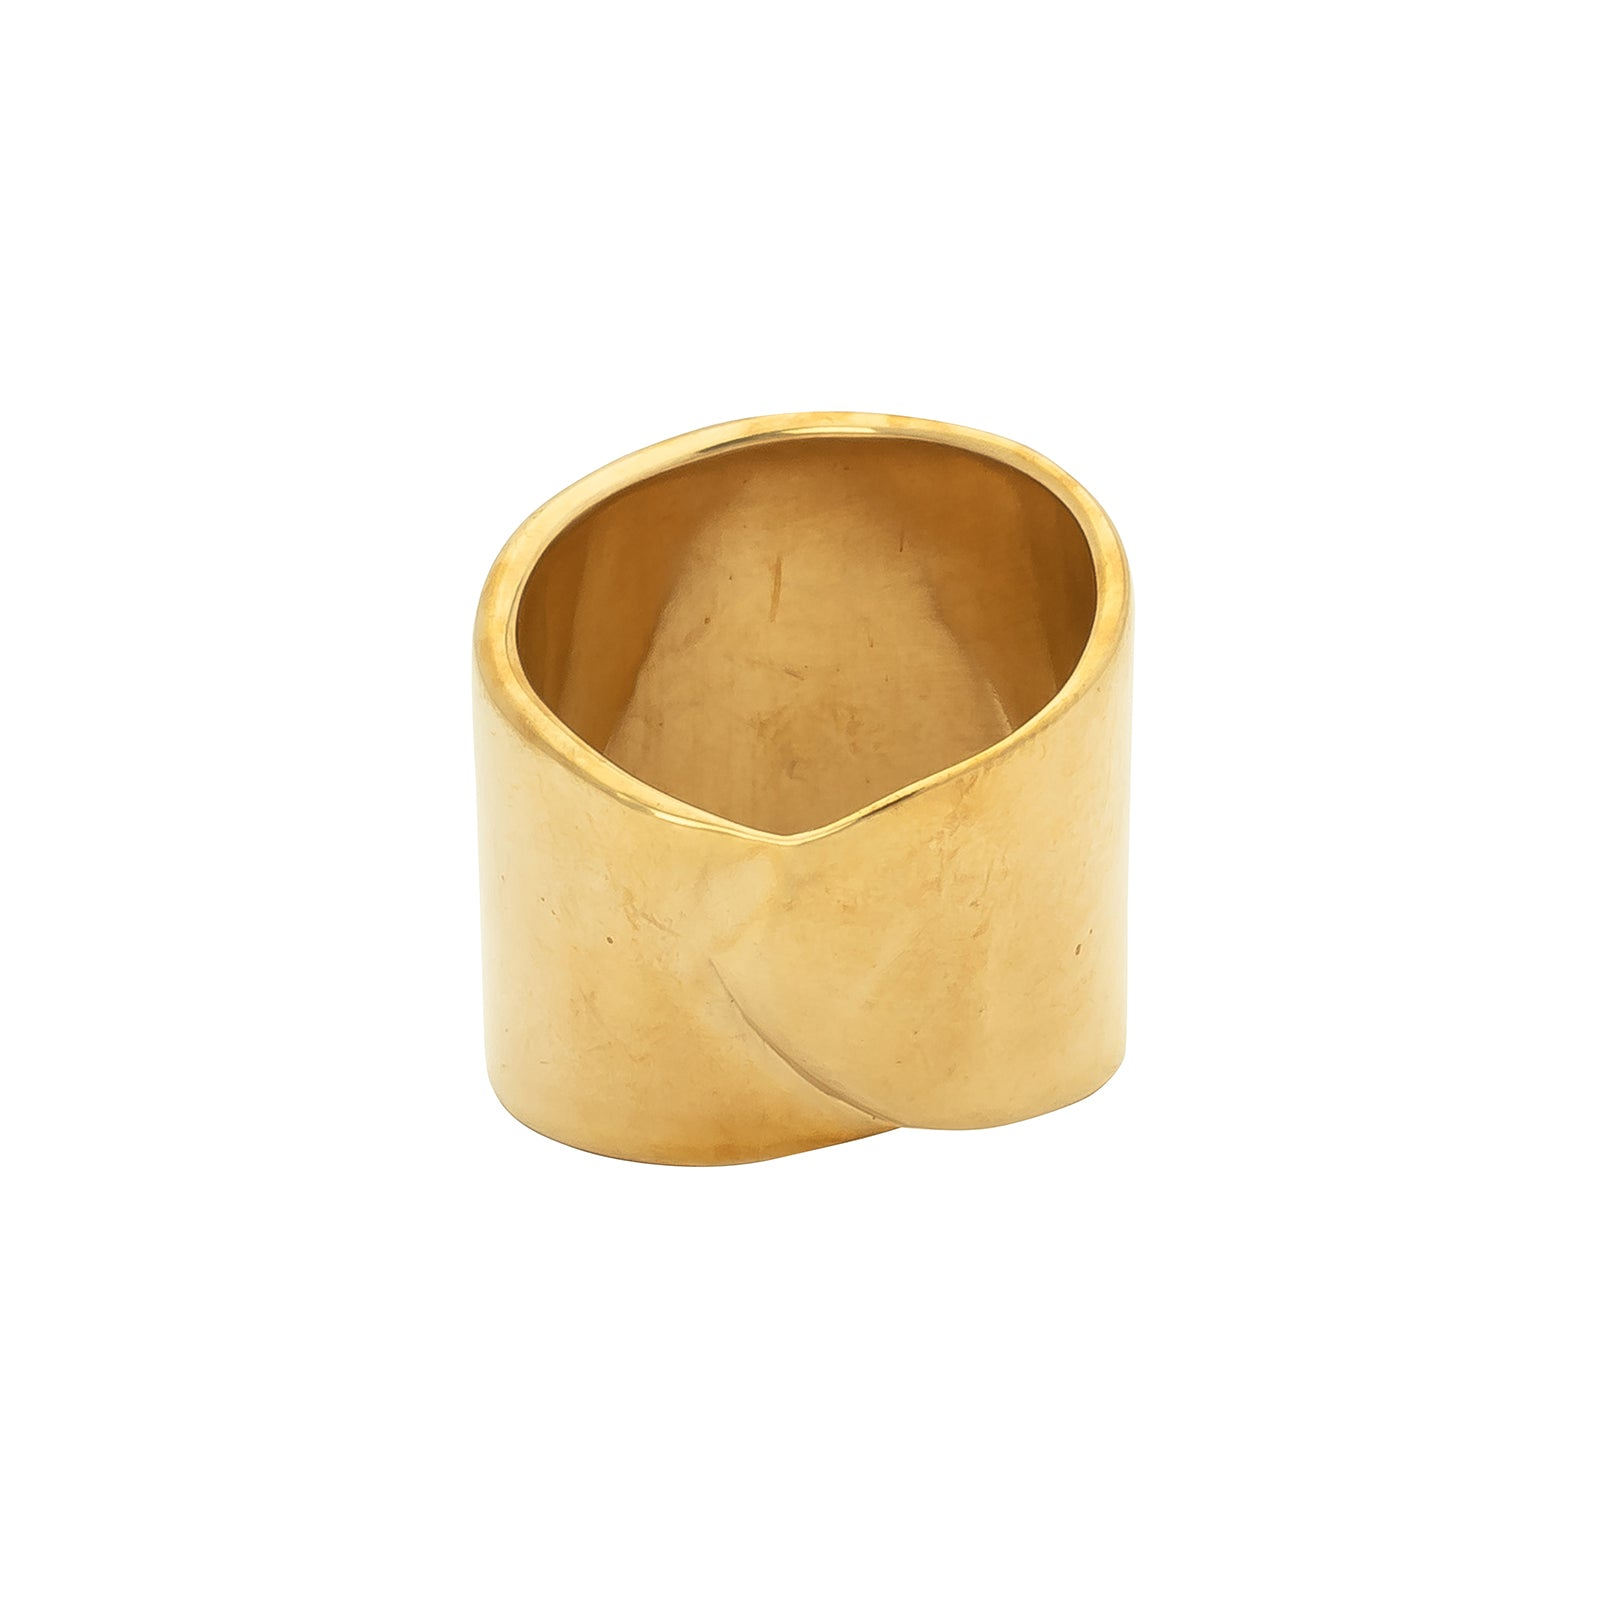 Ariana Boussard-Reifel Atum Ring - Brass - Rings - Broken English Jewelry